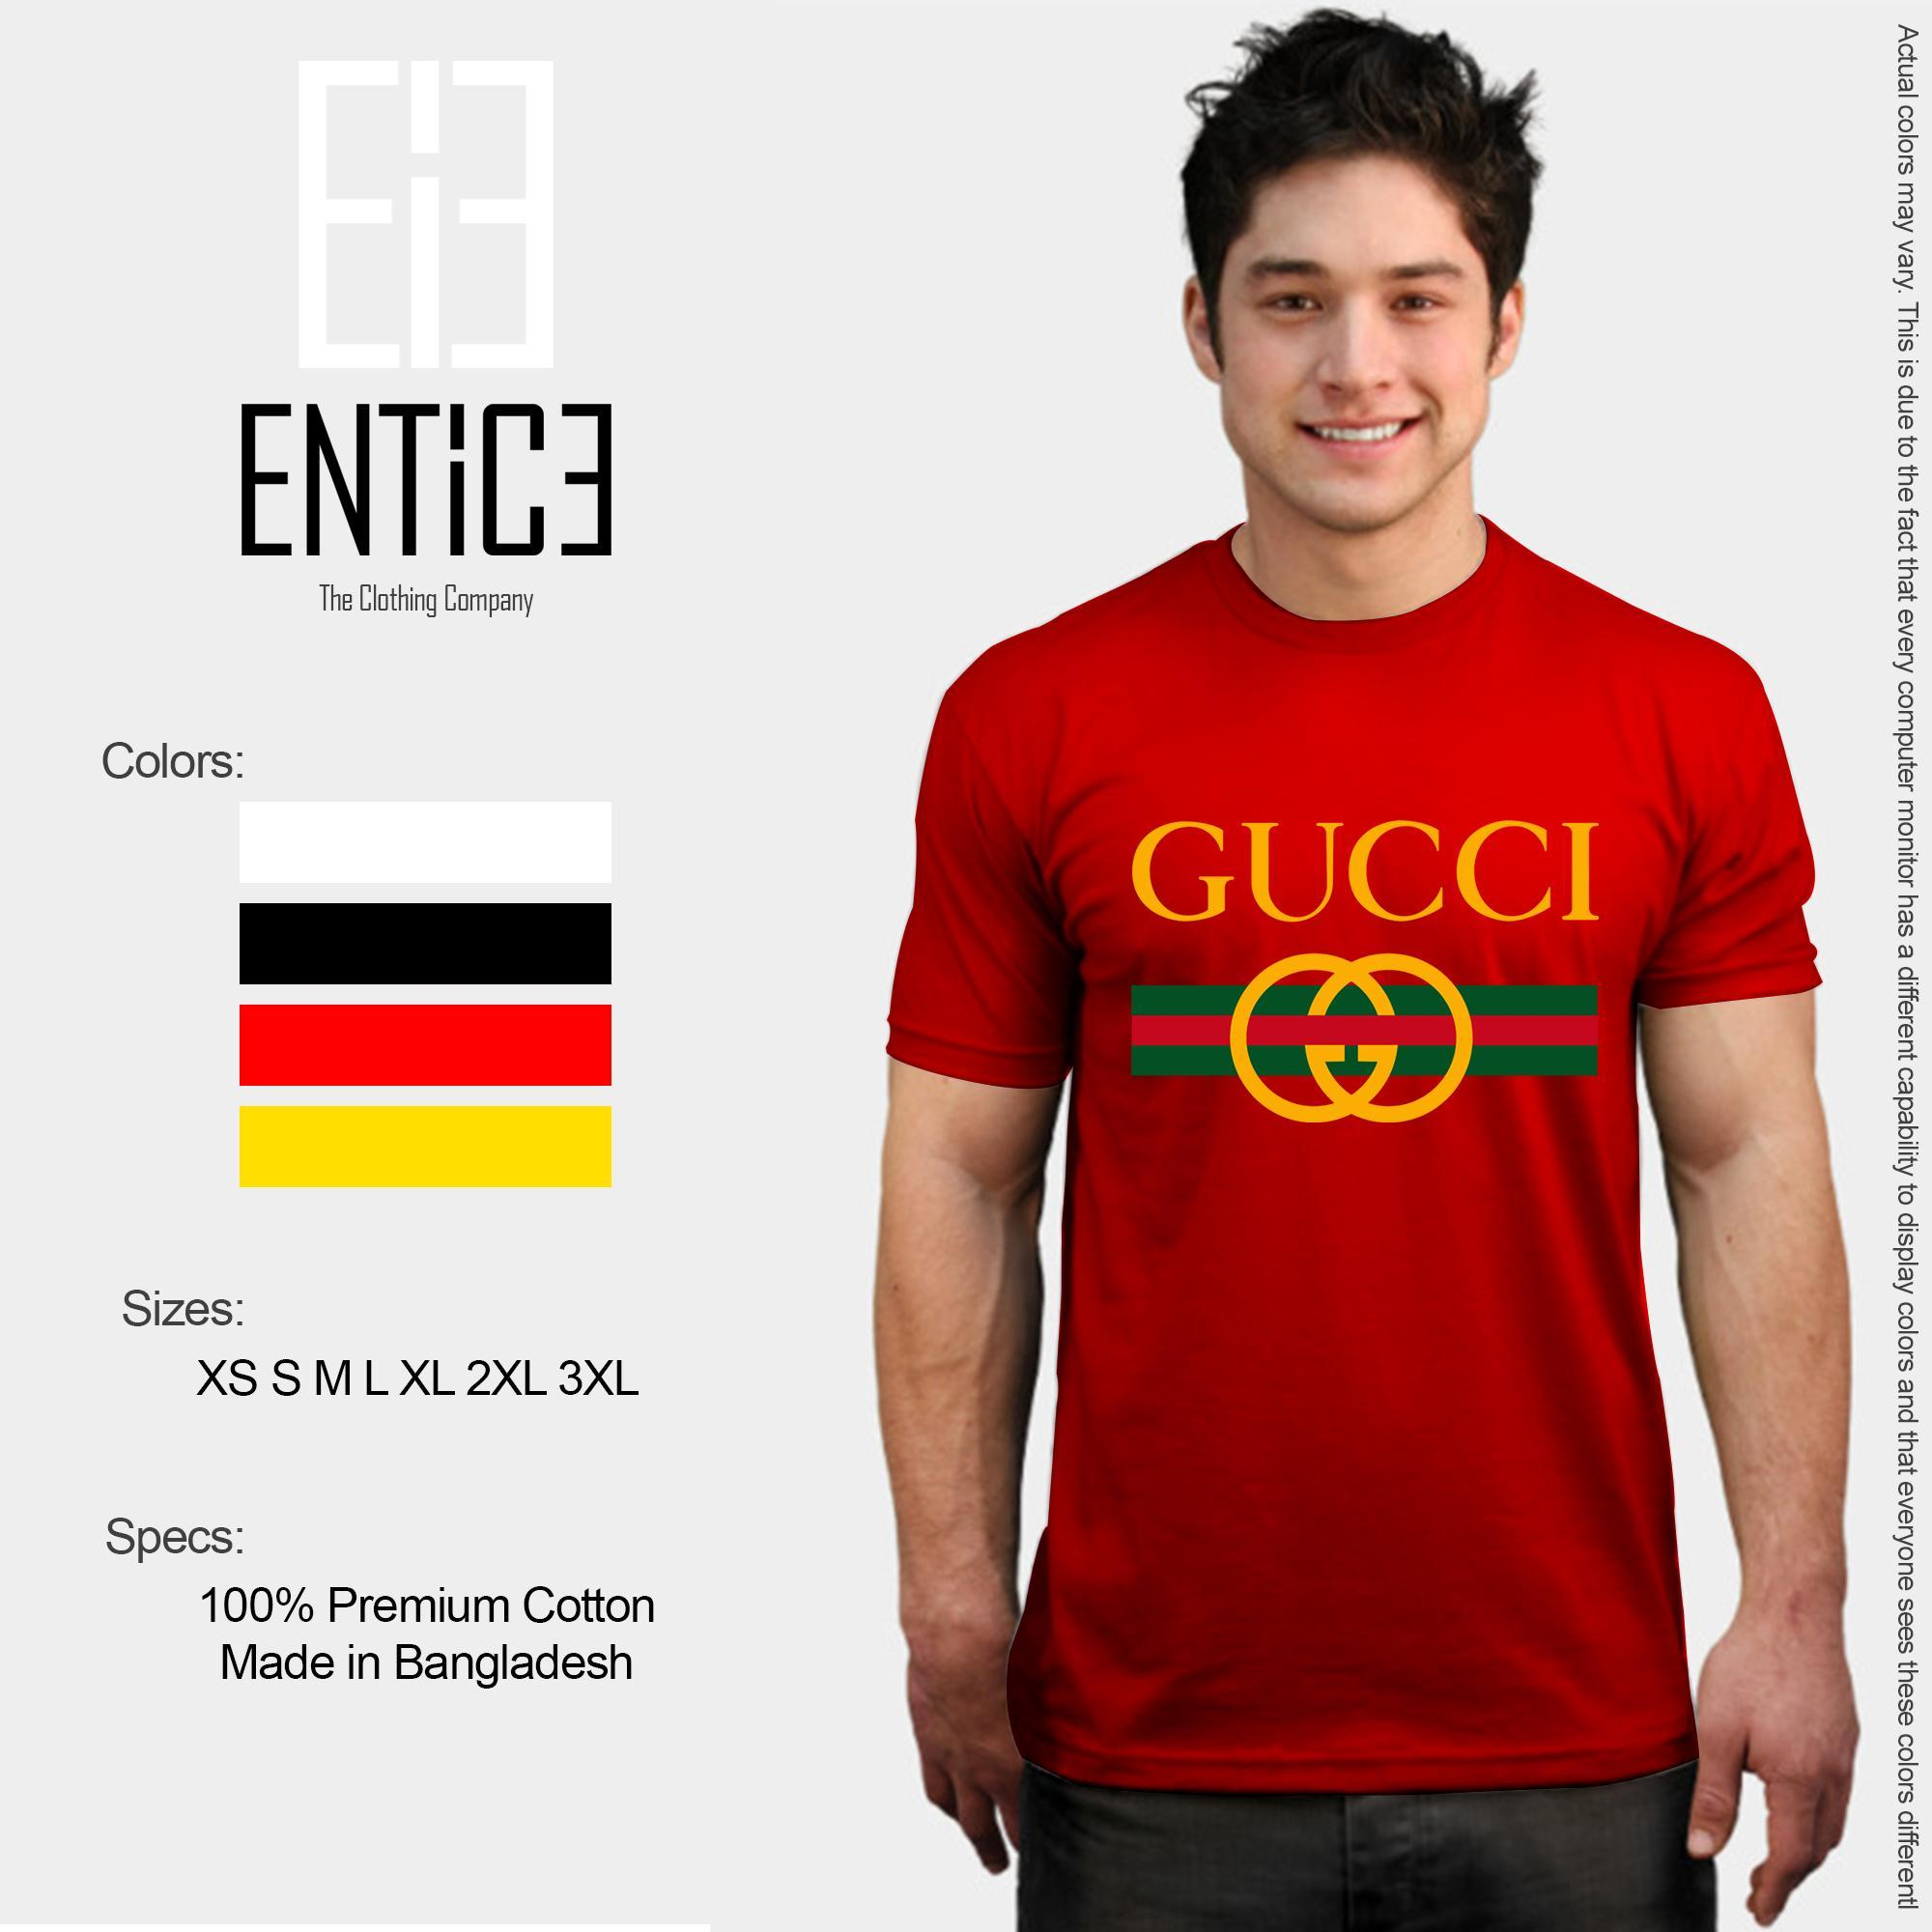 54f1ca04bc4 T-Shirt Clothing for Men for sale - Mens Shirt Clothing online ...